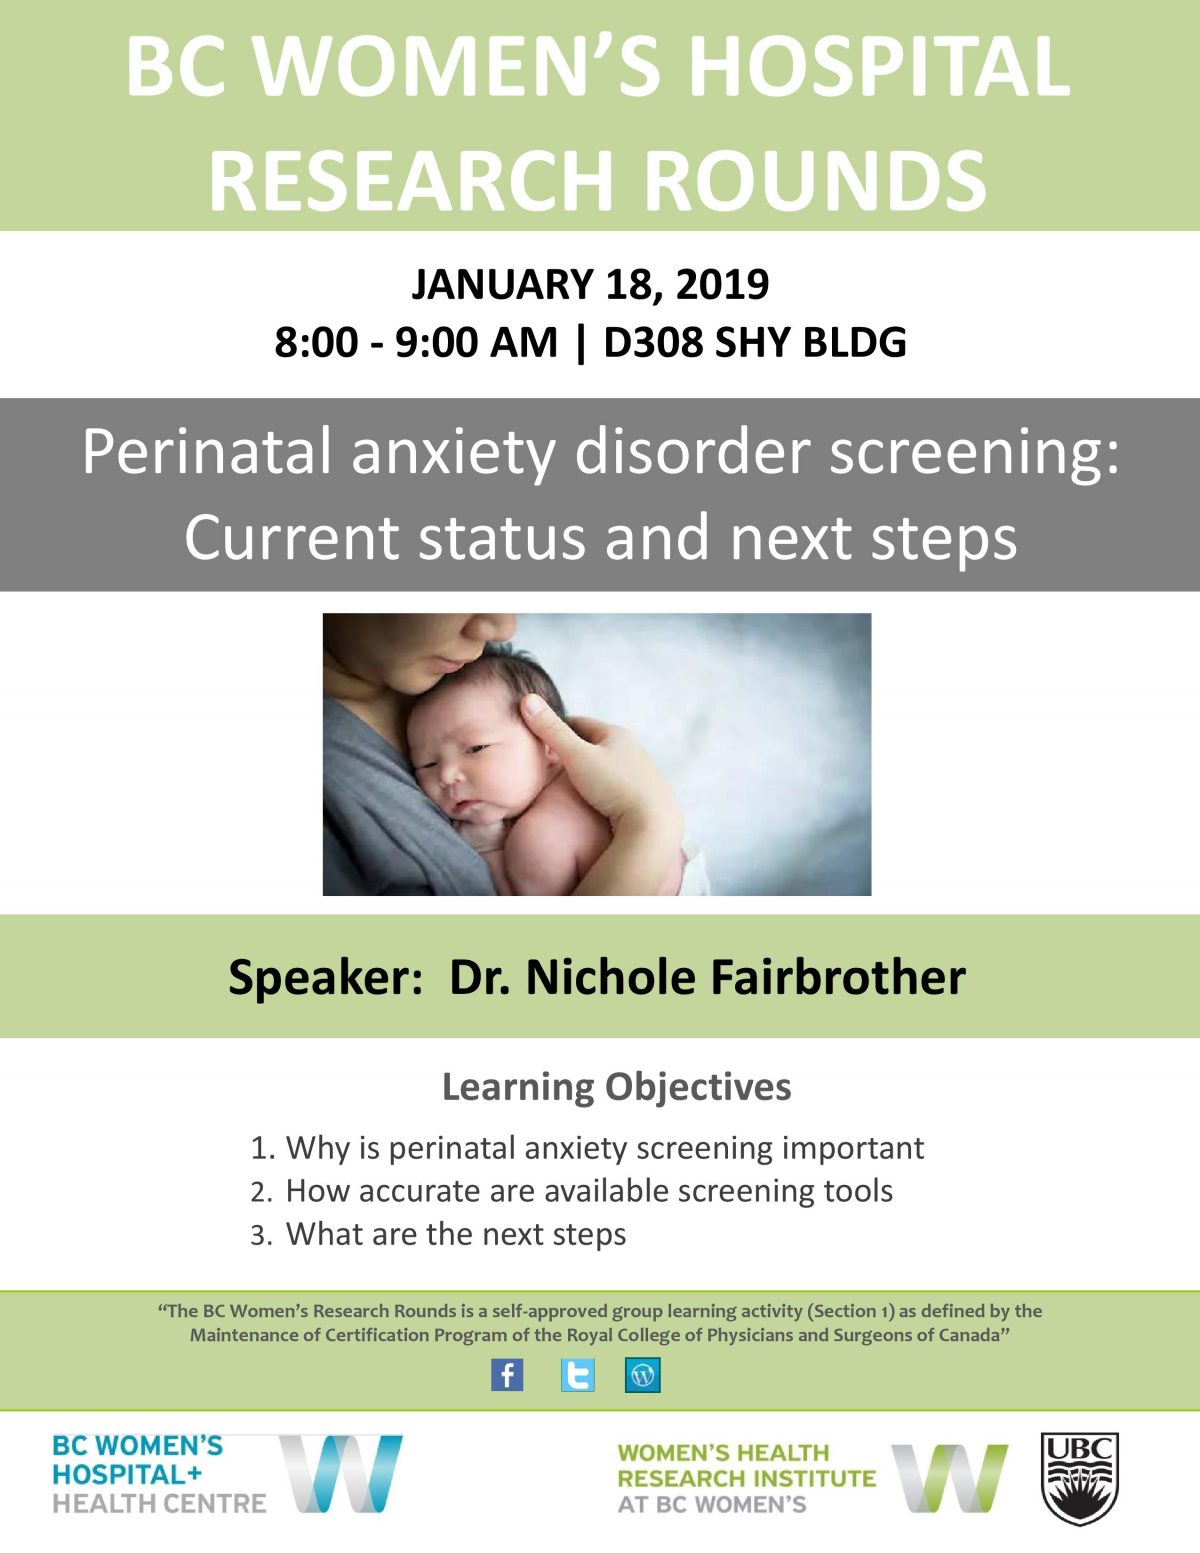 BC Women's Hospital Research Rounds: Perinatal anxiety disorder screening: Current status and next steps with Dr. Nichole Fairbrother